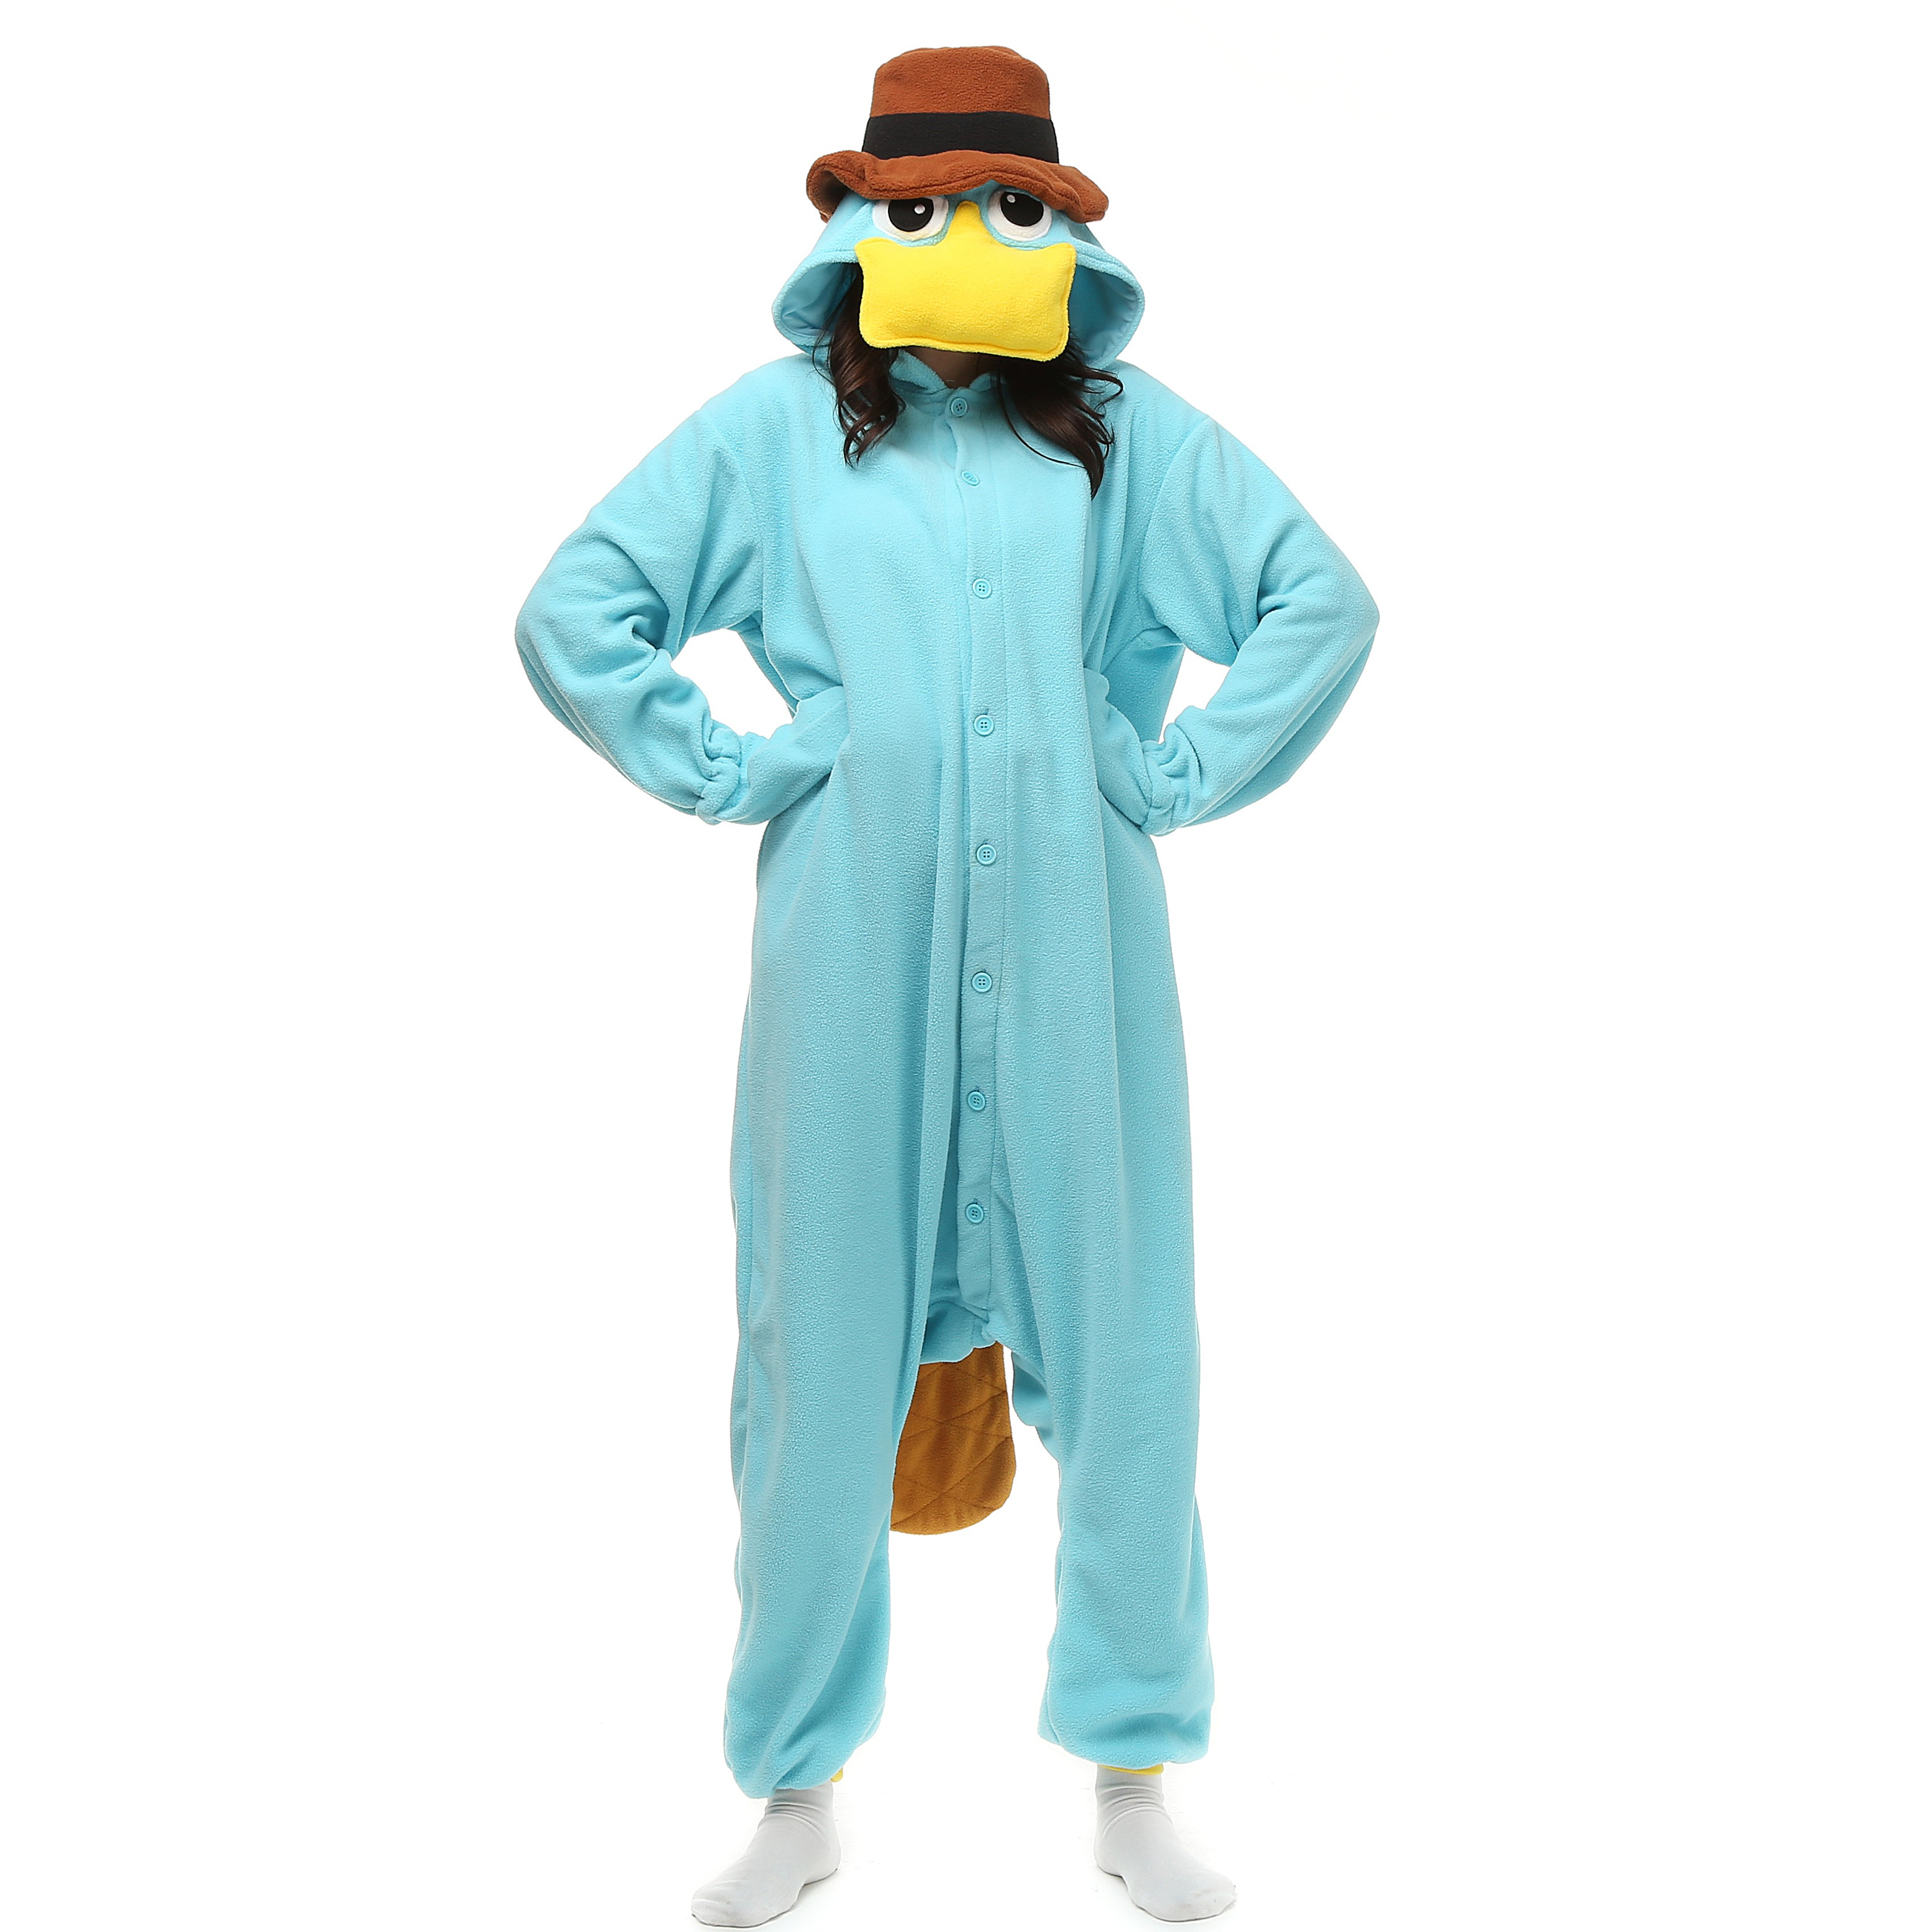 16abbe2471bd Perry the Platypus Onesie Unisex Women   Men Pajama Disney Phineas and Ferb  Party Costumes